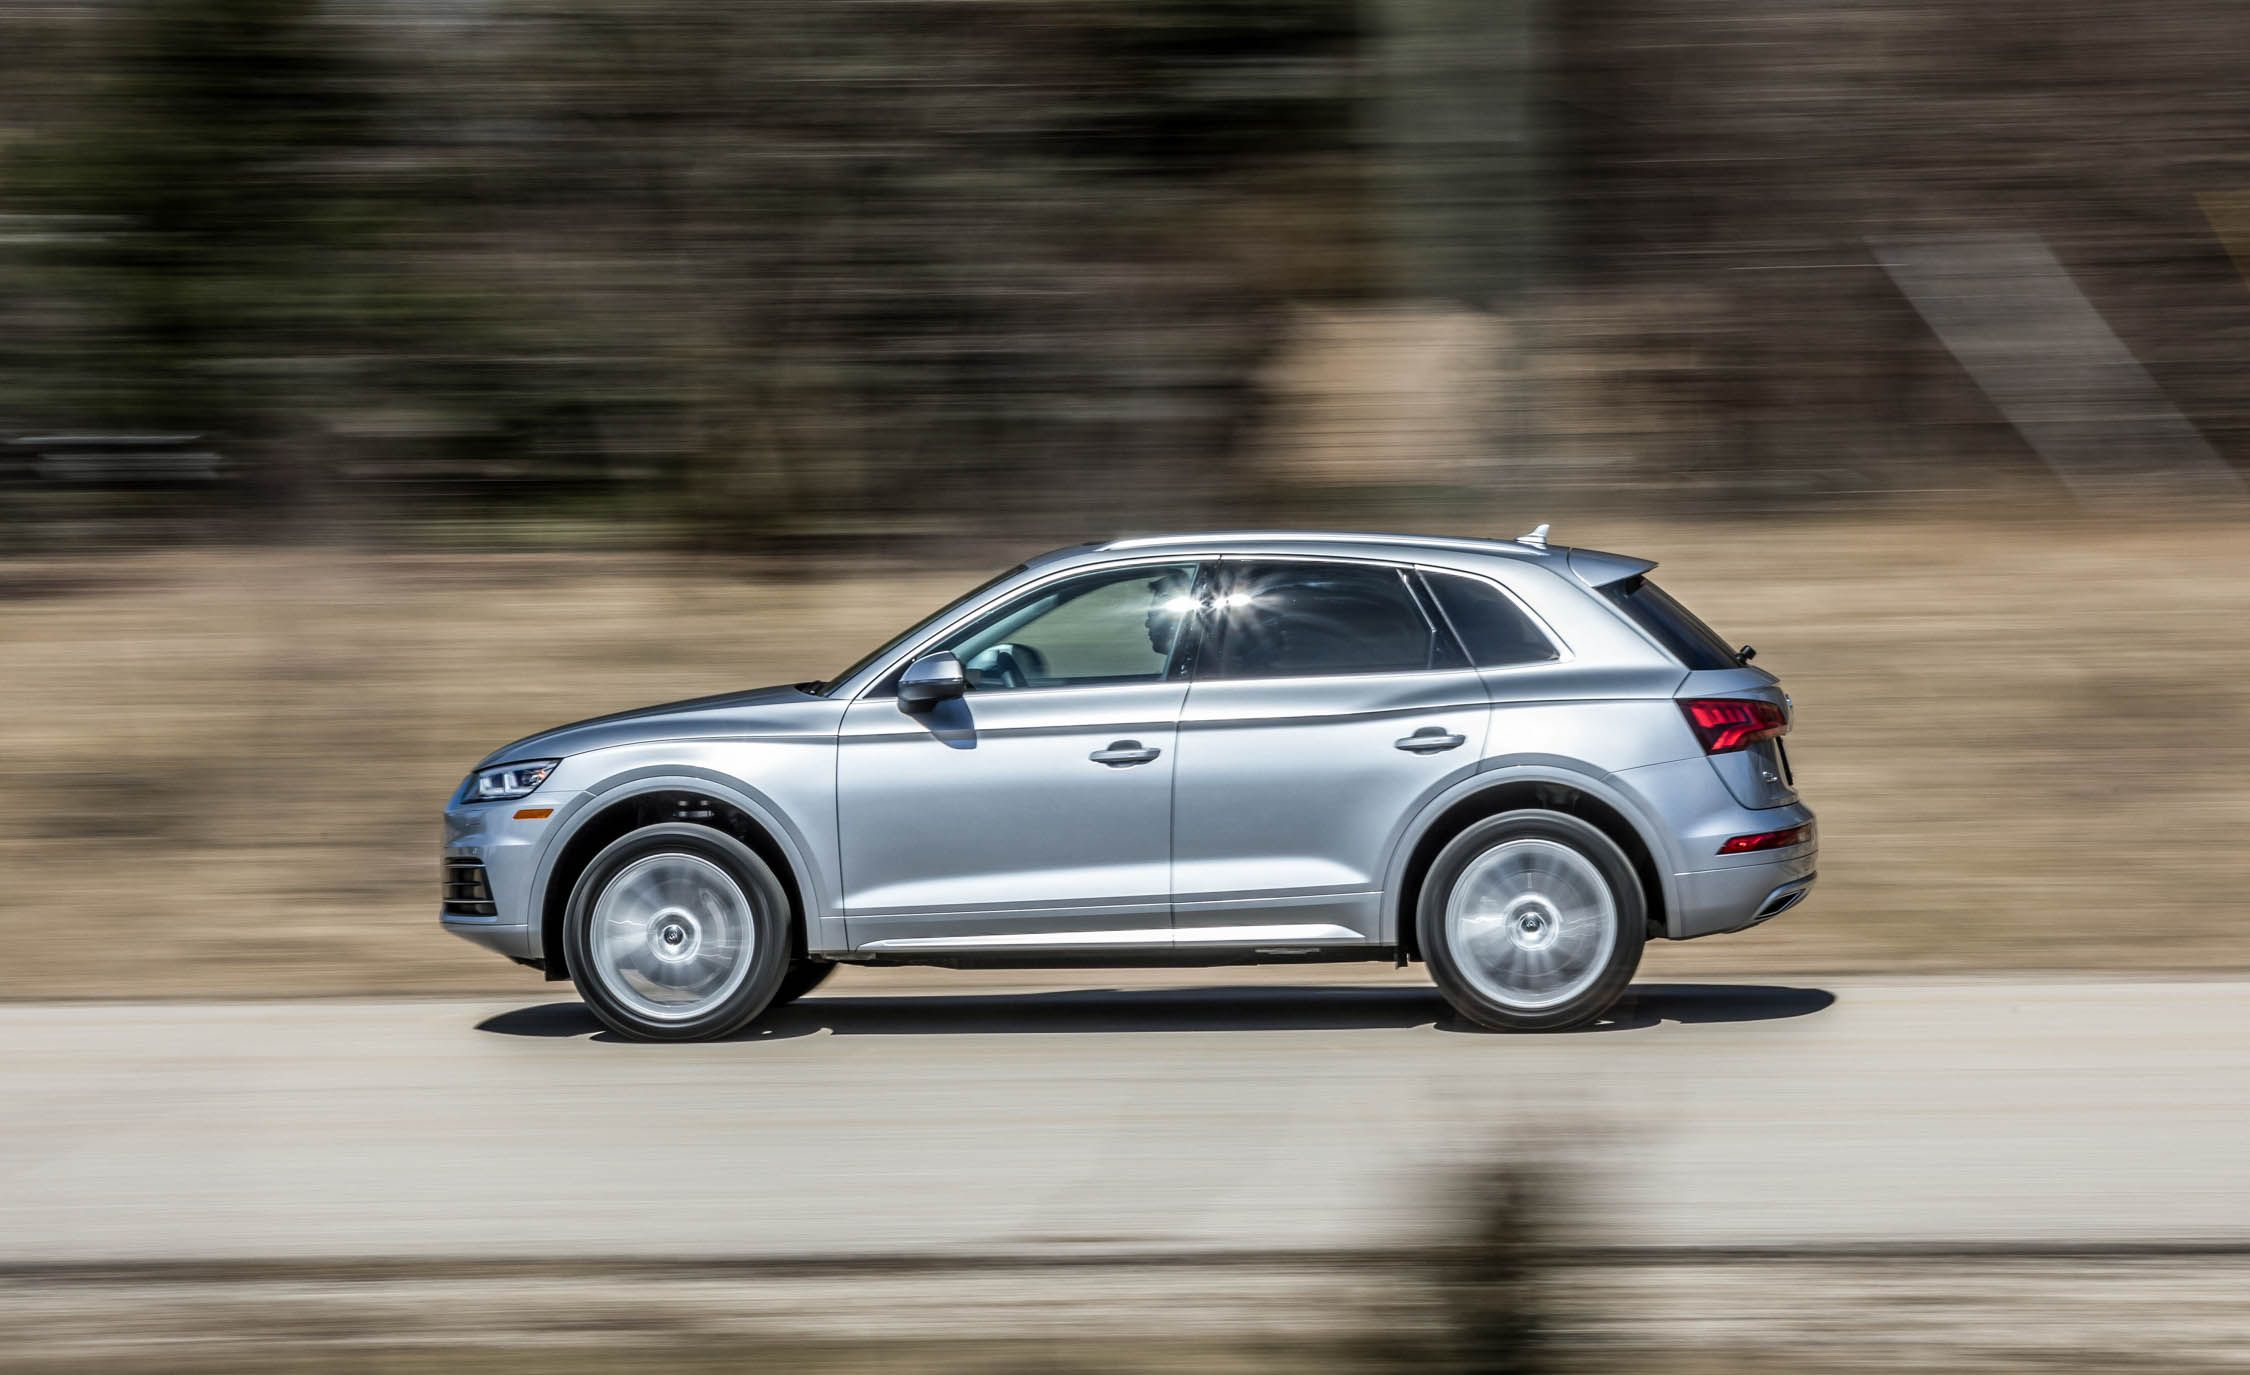 2018 Audi Q5 Safety And Driver Assistance Review Car And Driver